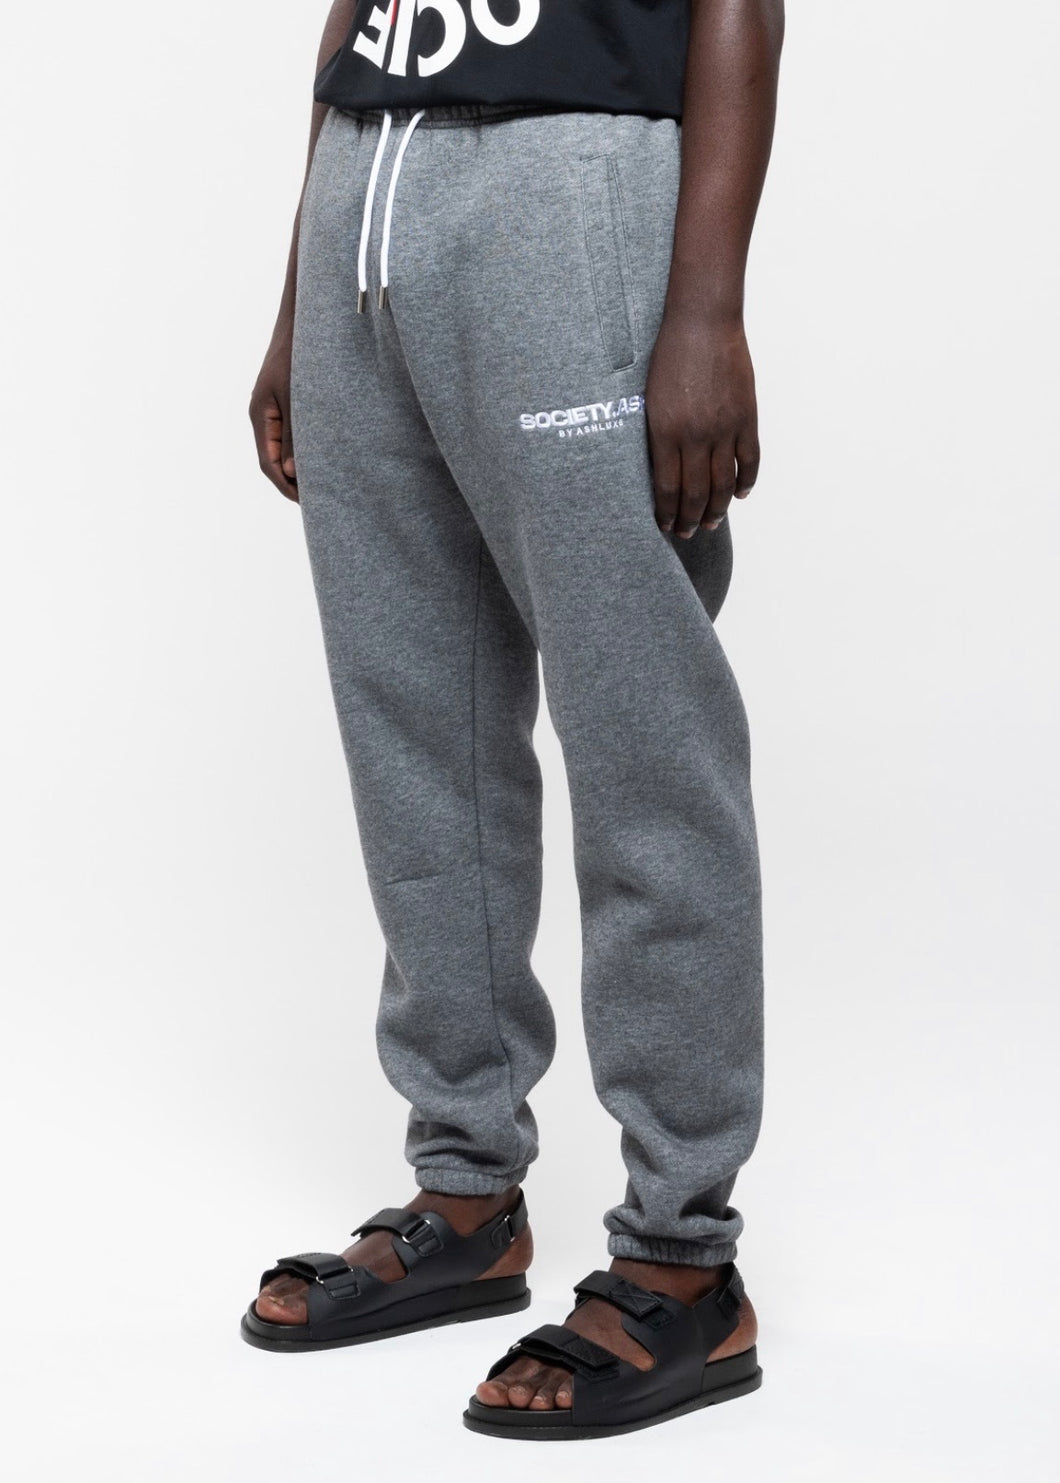 SOCIETY GREY SWEATPANTS